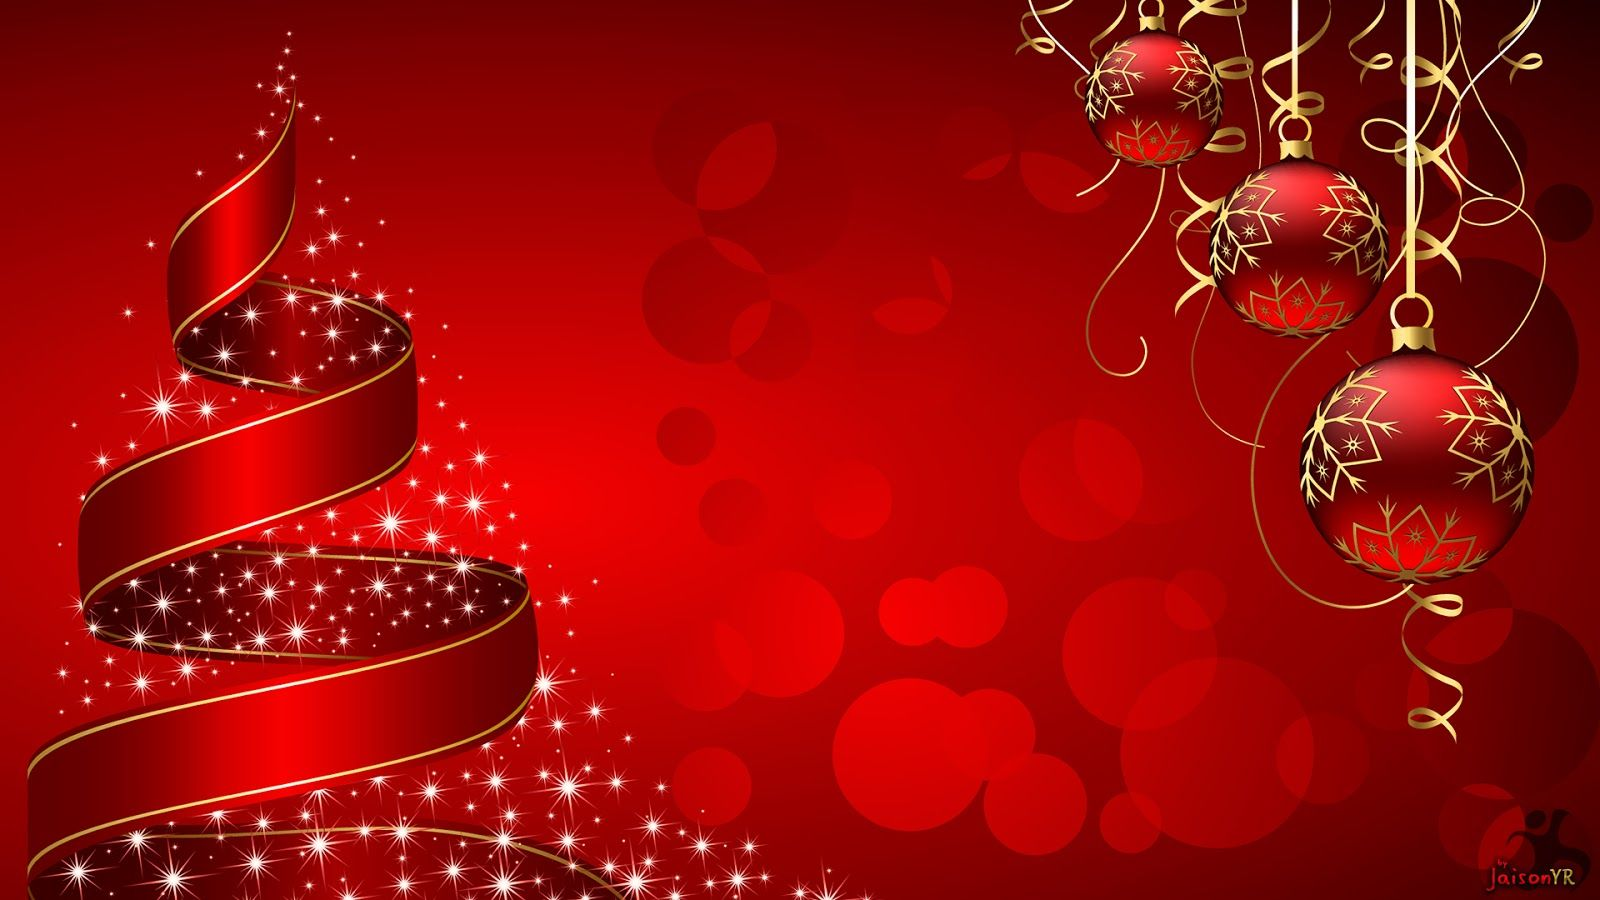 Find The Best Christmas Wallpaper On WallpaperTag We Have A Massive Amount Of Desktop And Mobile Backgrounds